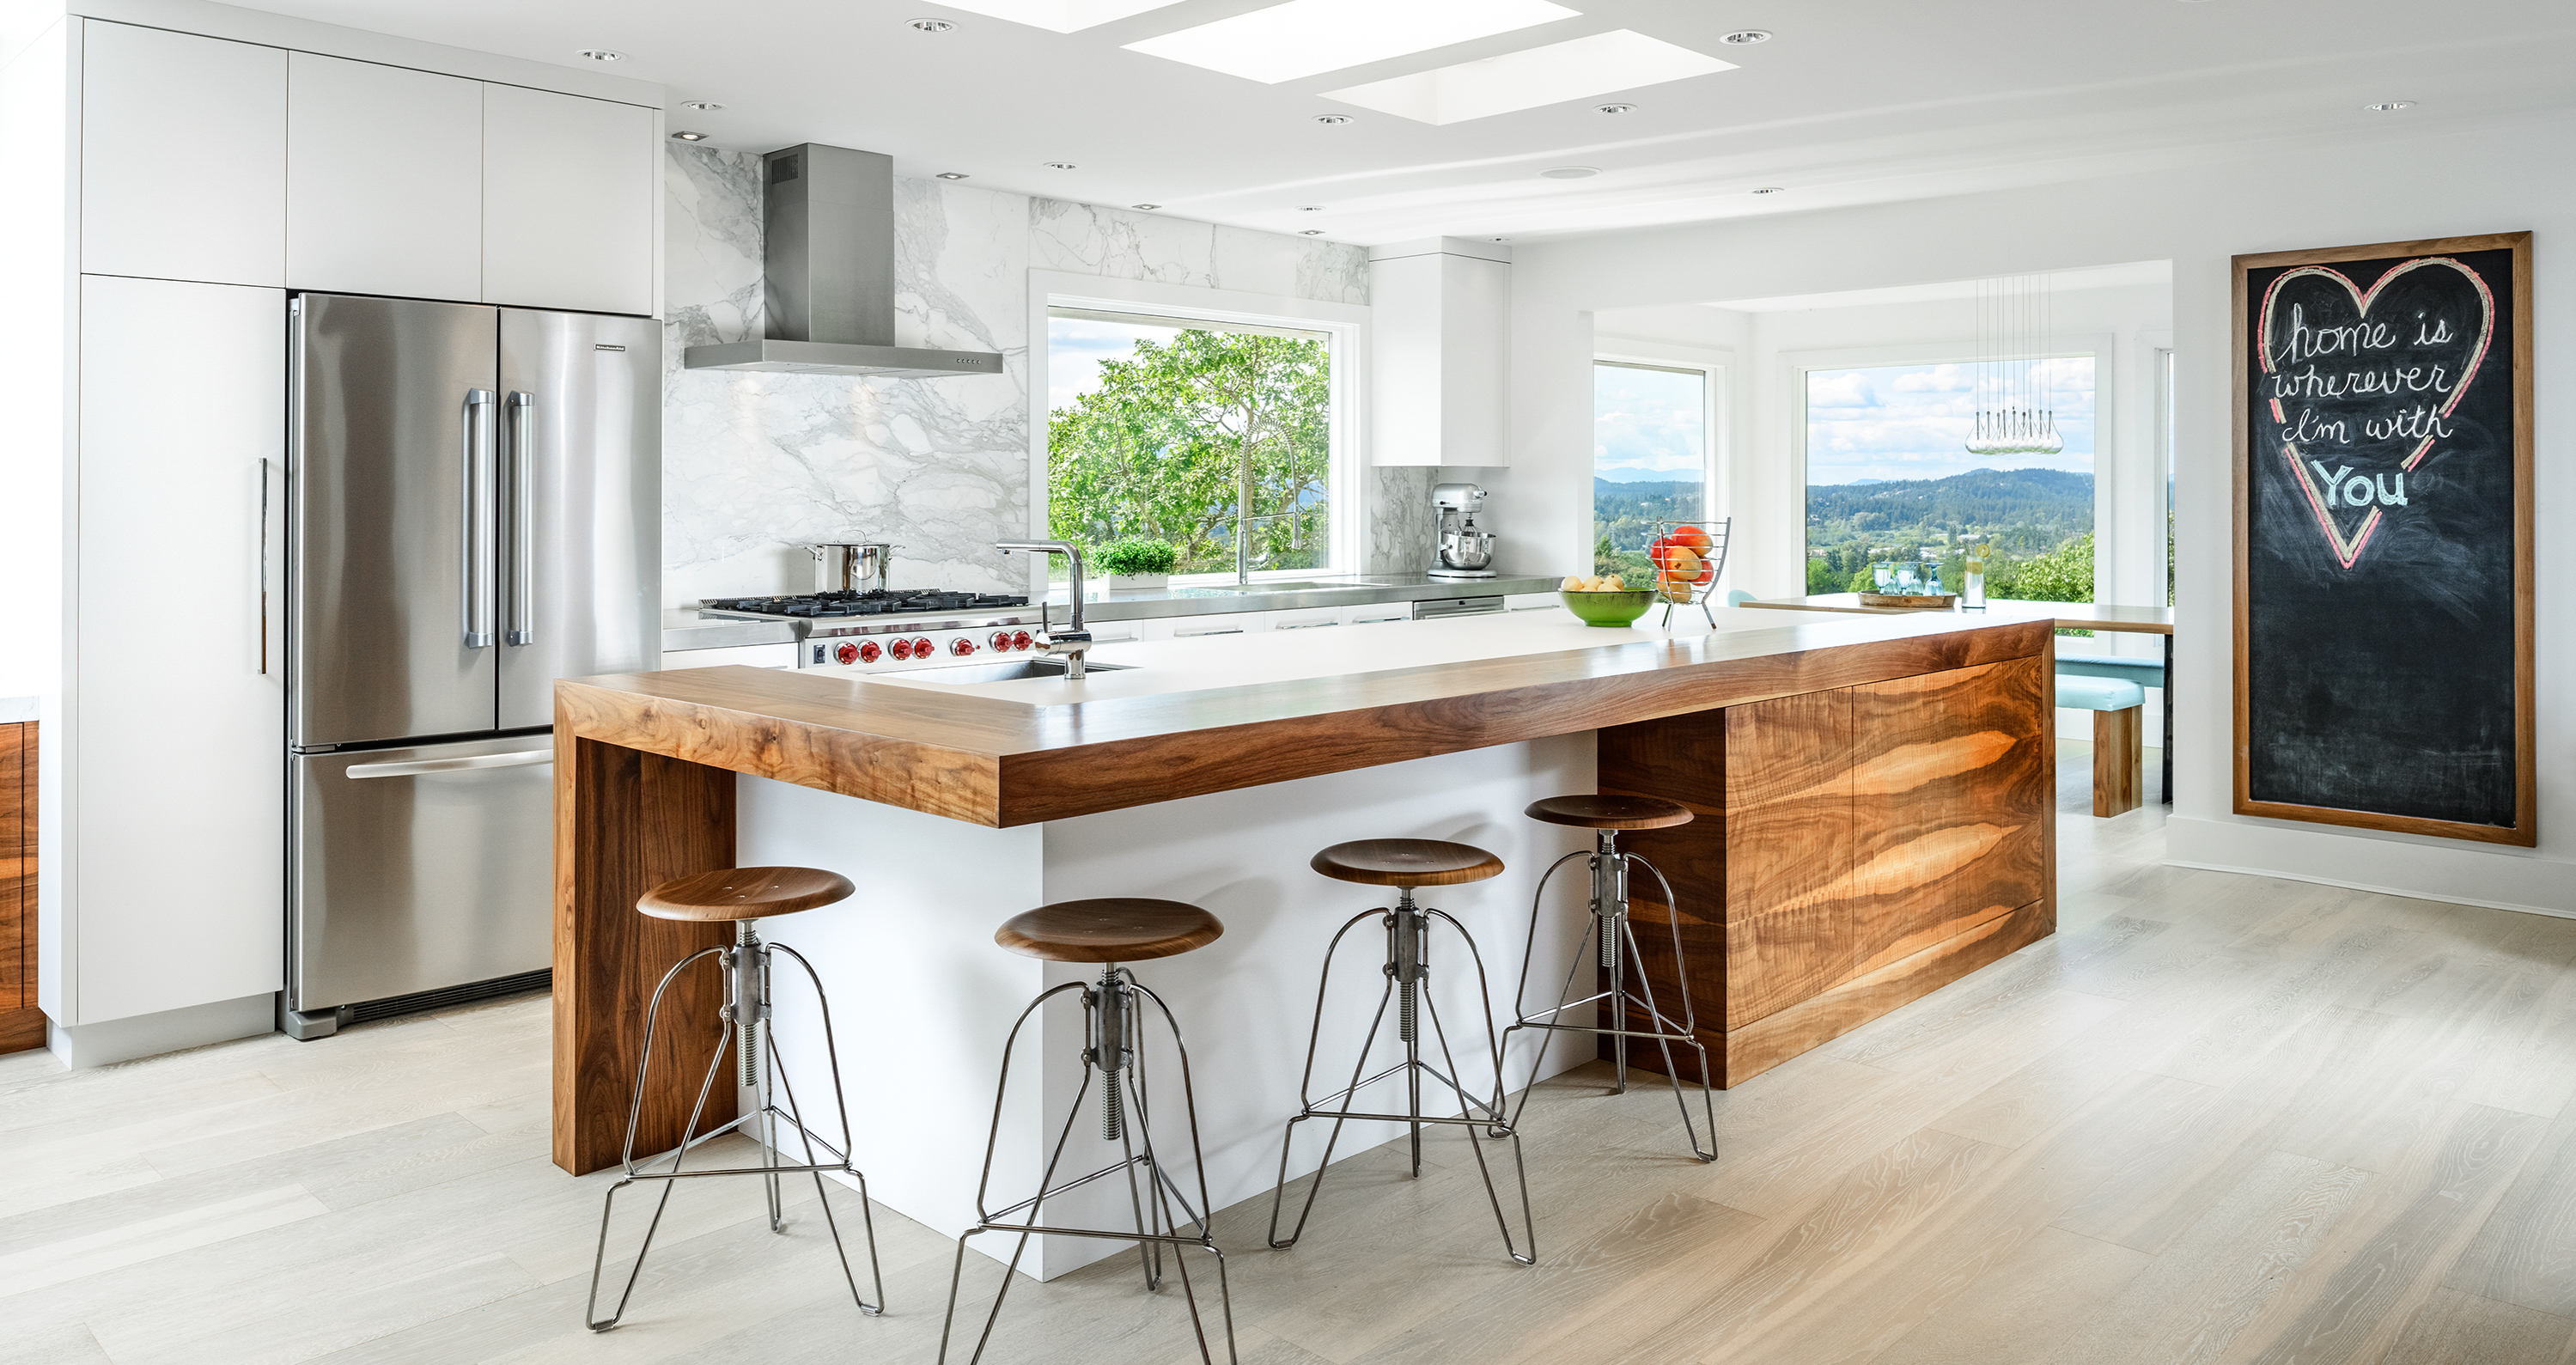 Kitchen and Bath Design in 2015—What's Hot, What's Not ...